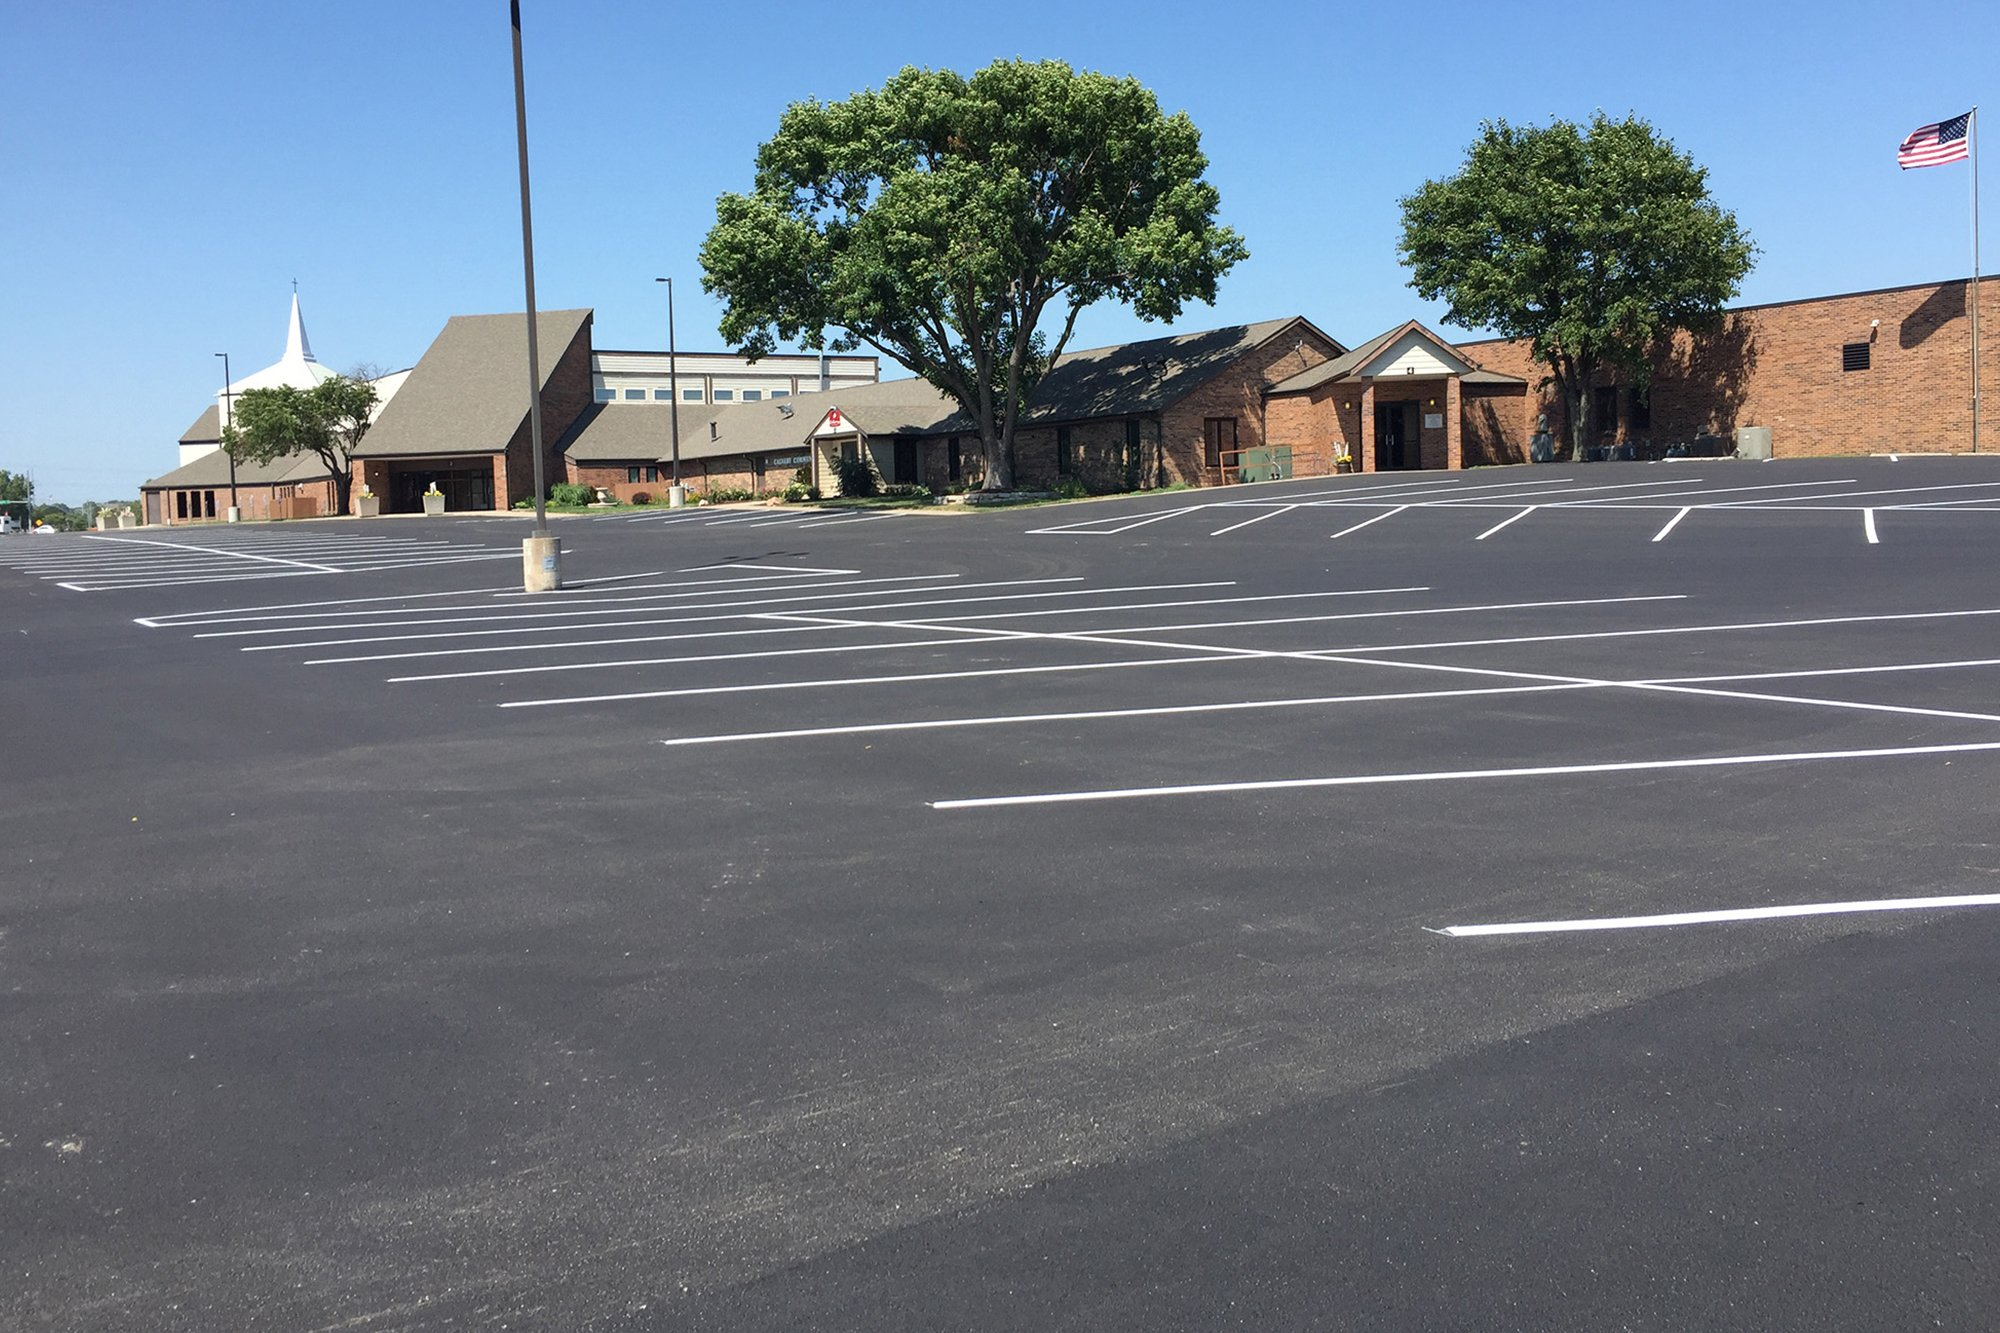 Lincoln Paving Asphalt Repair and Patching Lincoln Asphalt parking lot striping after4 - APMS Lincoln Paving Services